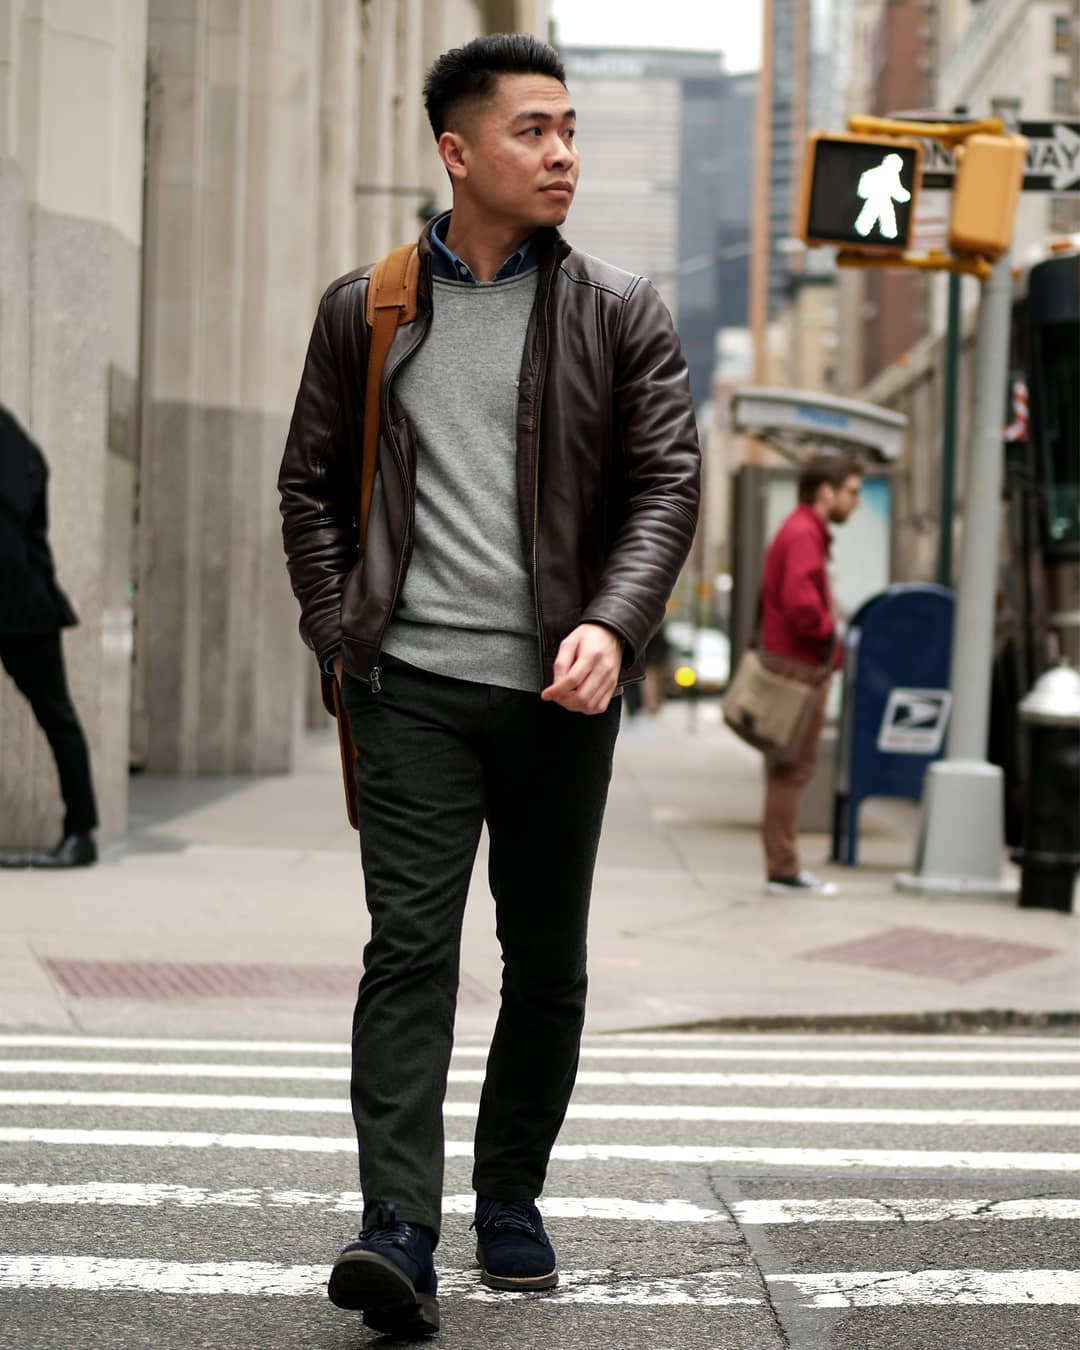 Gray sweater with leather jacket